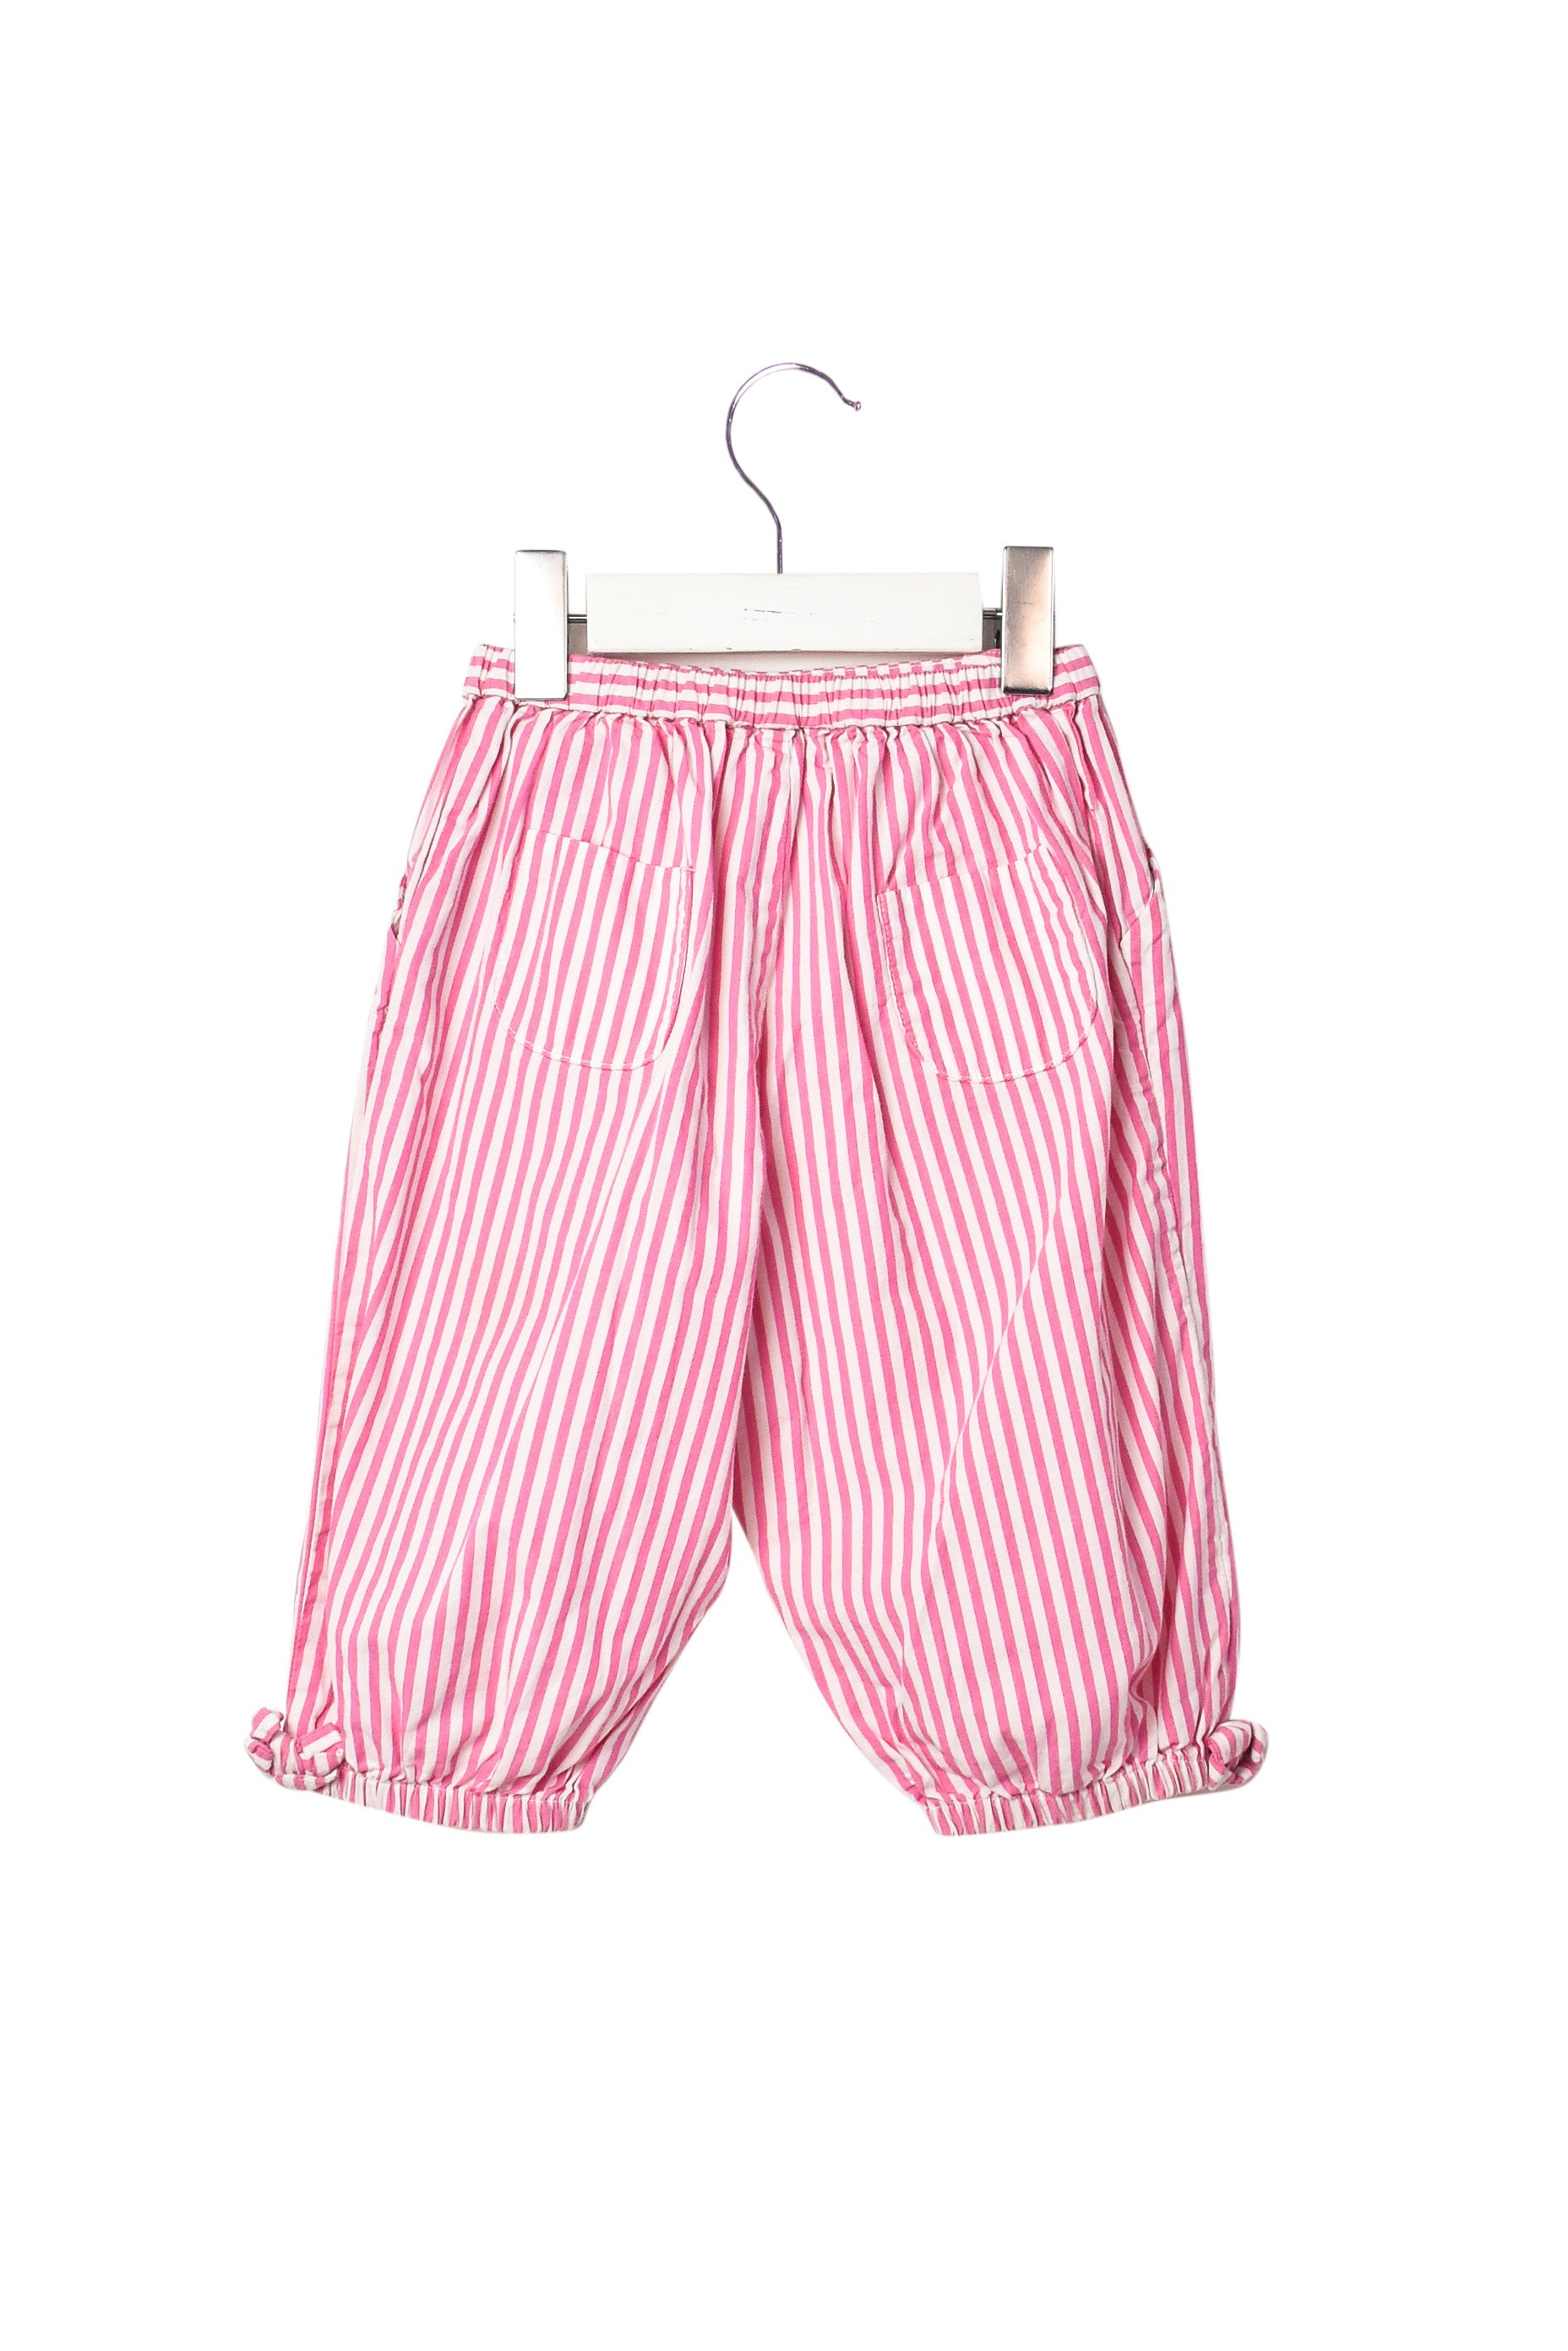 10005040 Jacadi Baby~ Pants 12M, Jacadi Retykle | Online Baby & Kids Clothing Hong Kong